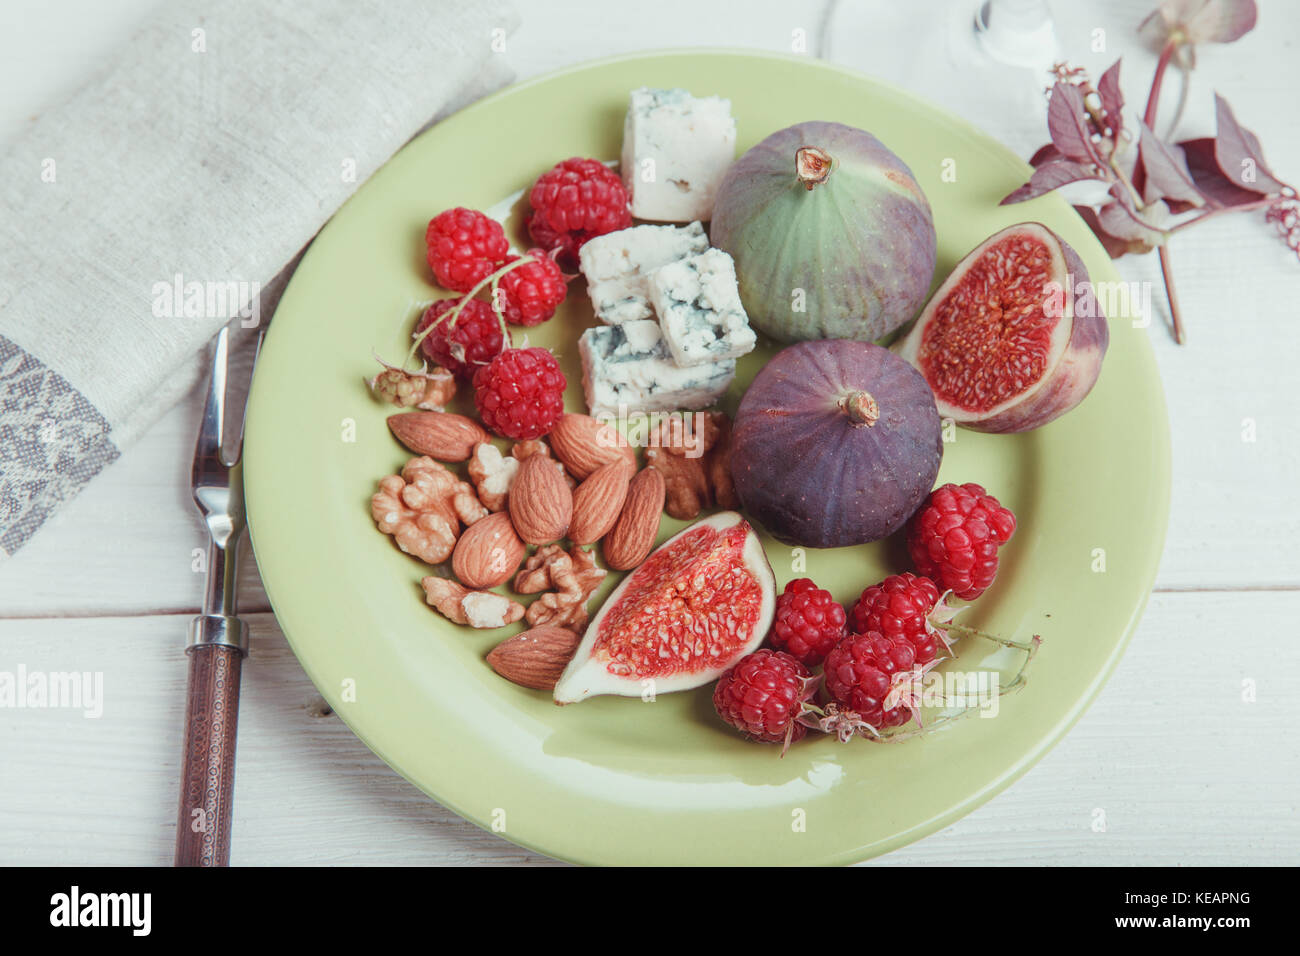 Serving the table, fresh figs, fruits, berries, cheese, nuts on a white wooden background - Stock Image